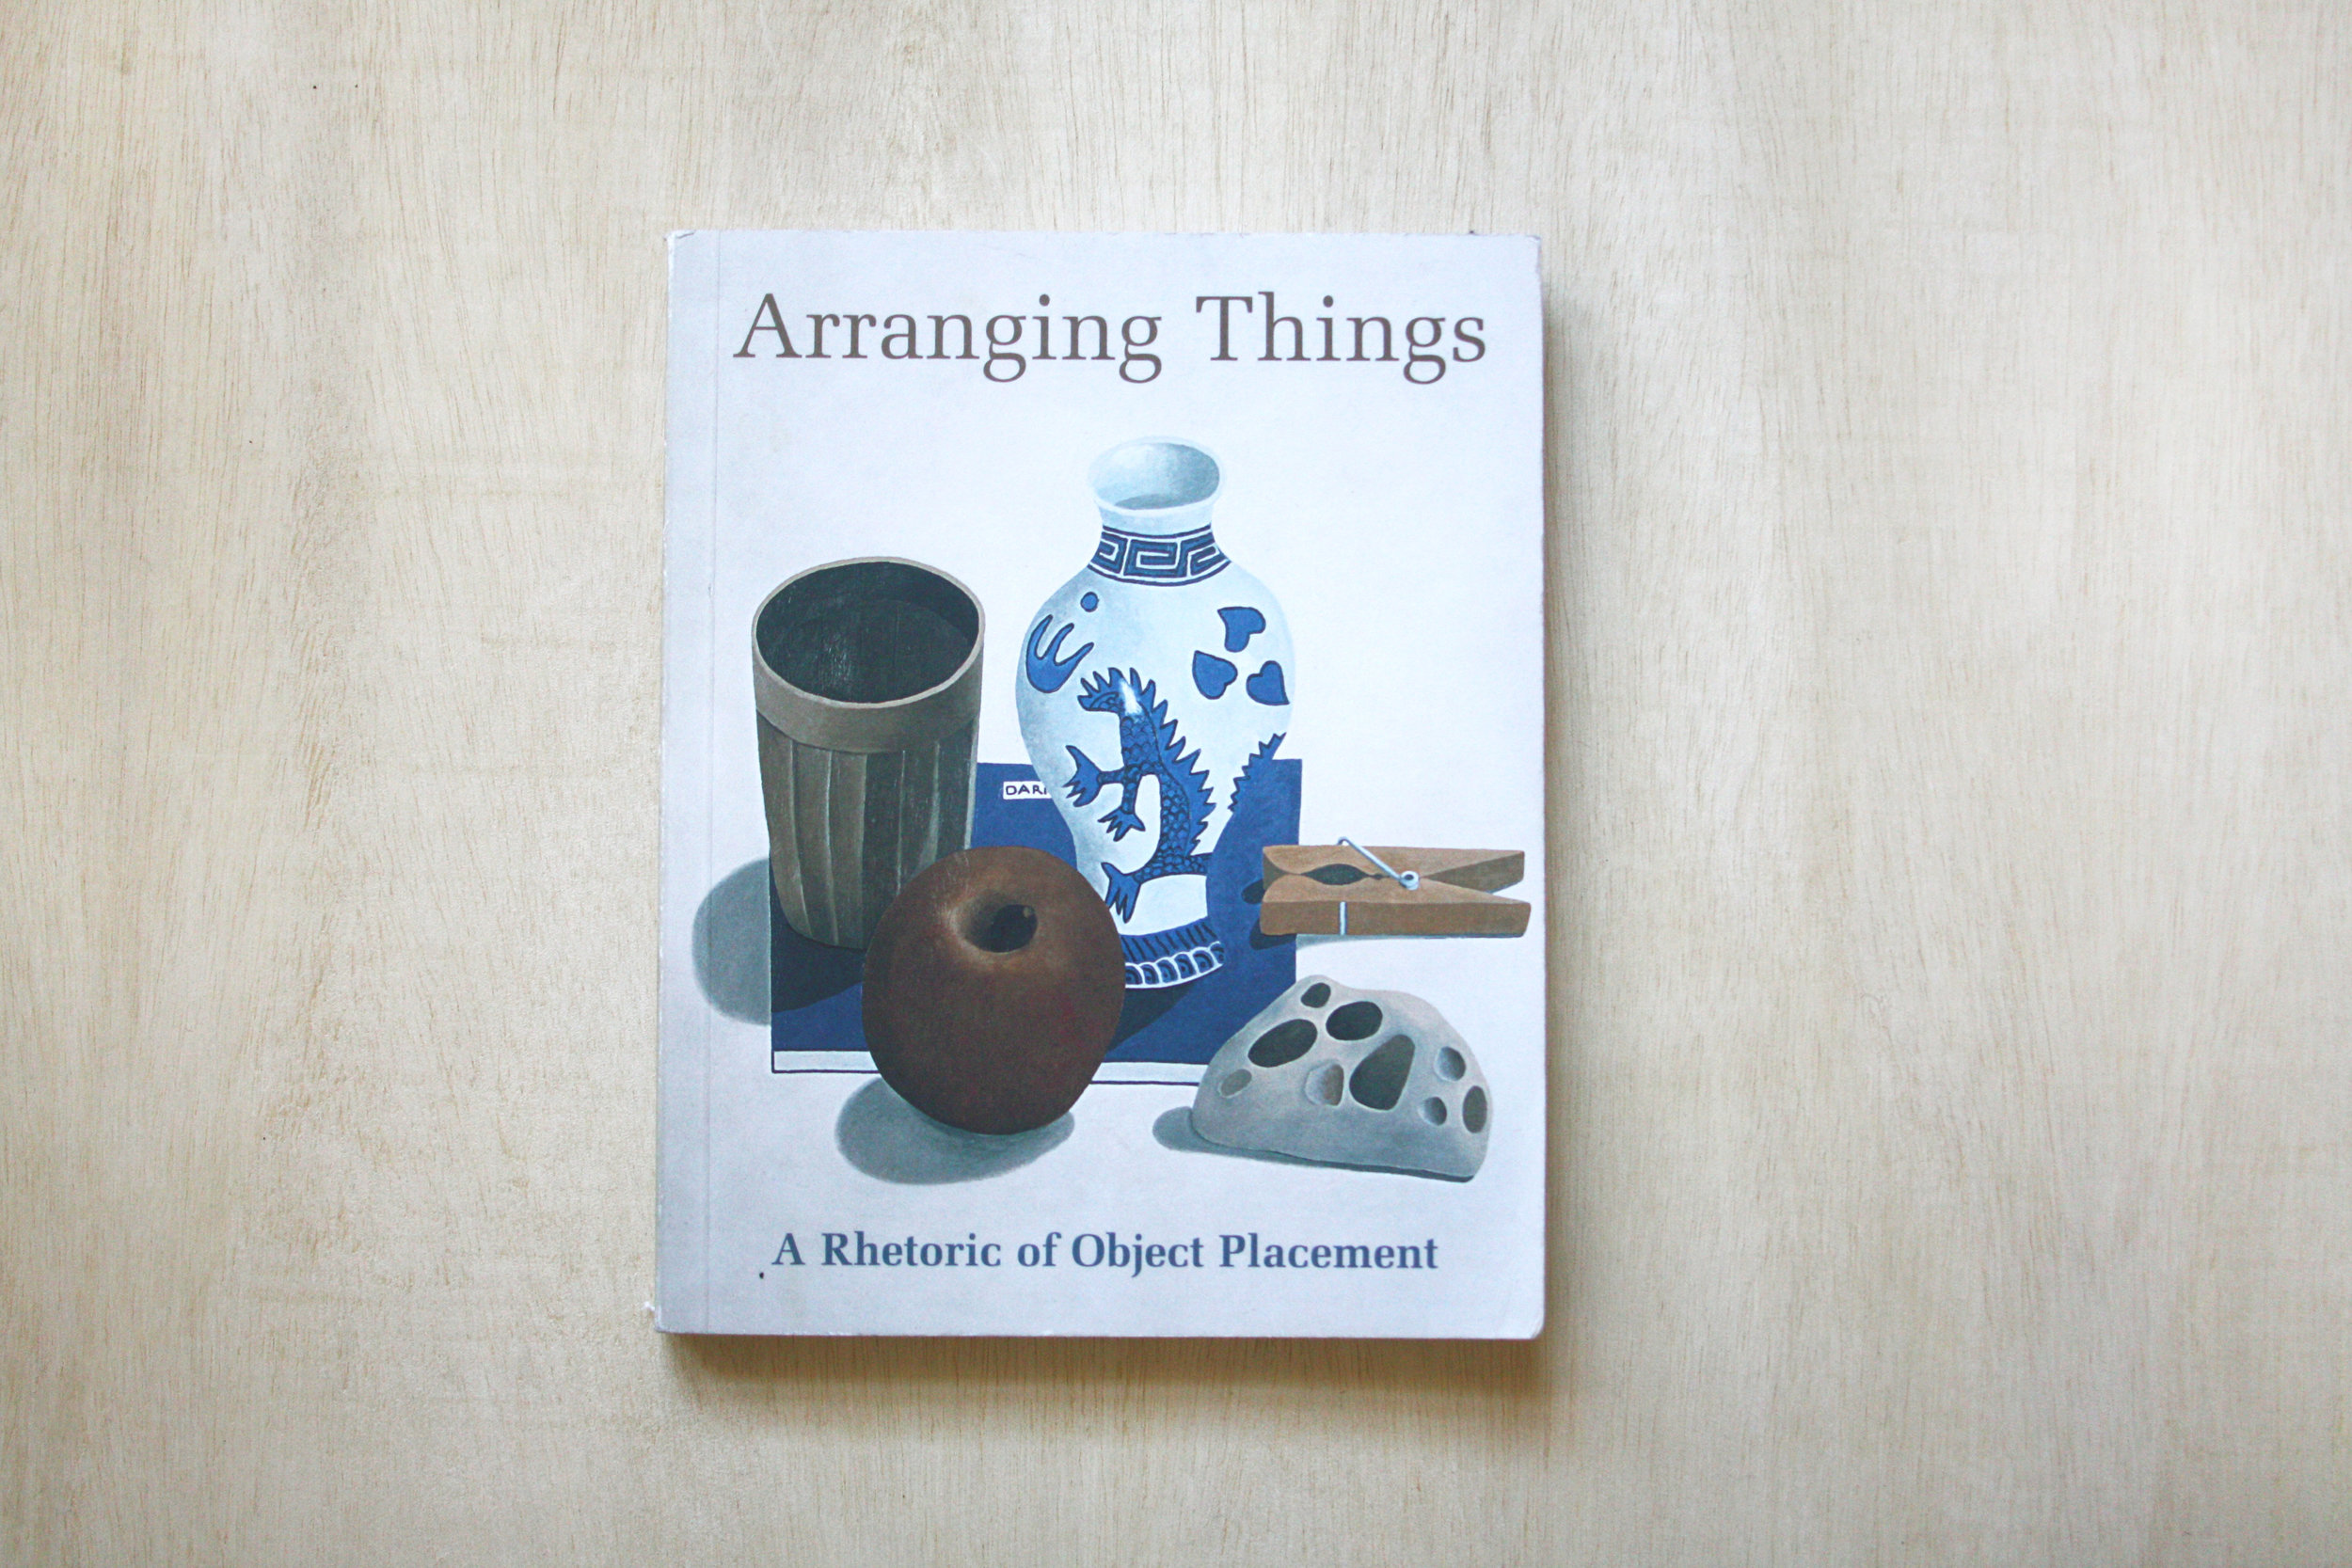 Arranging Things: A Rhetoric of Object Placement  by Leonard Koren